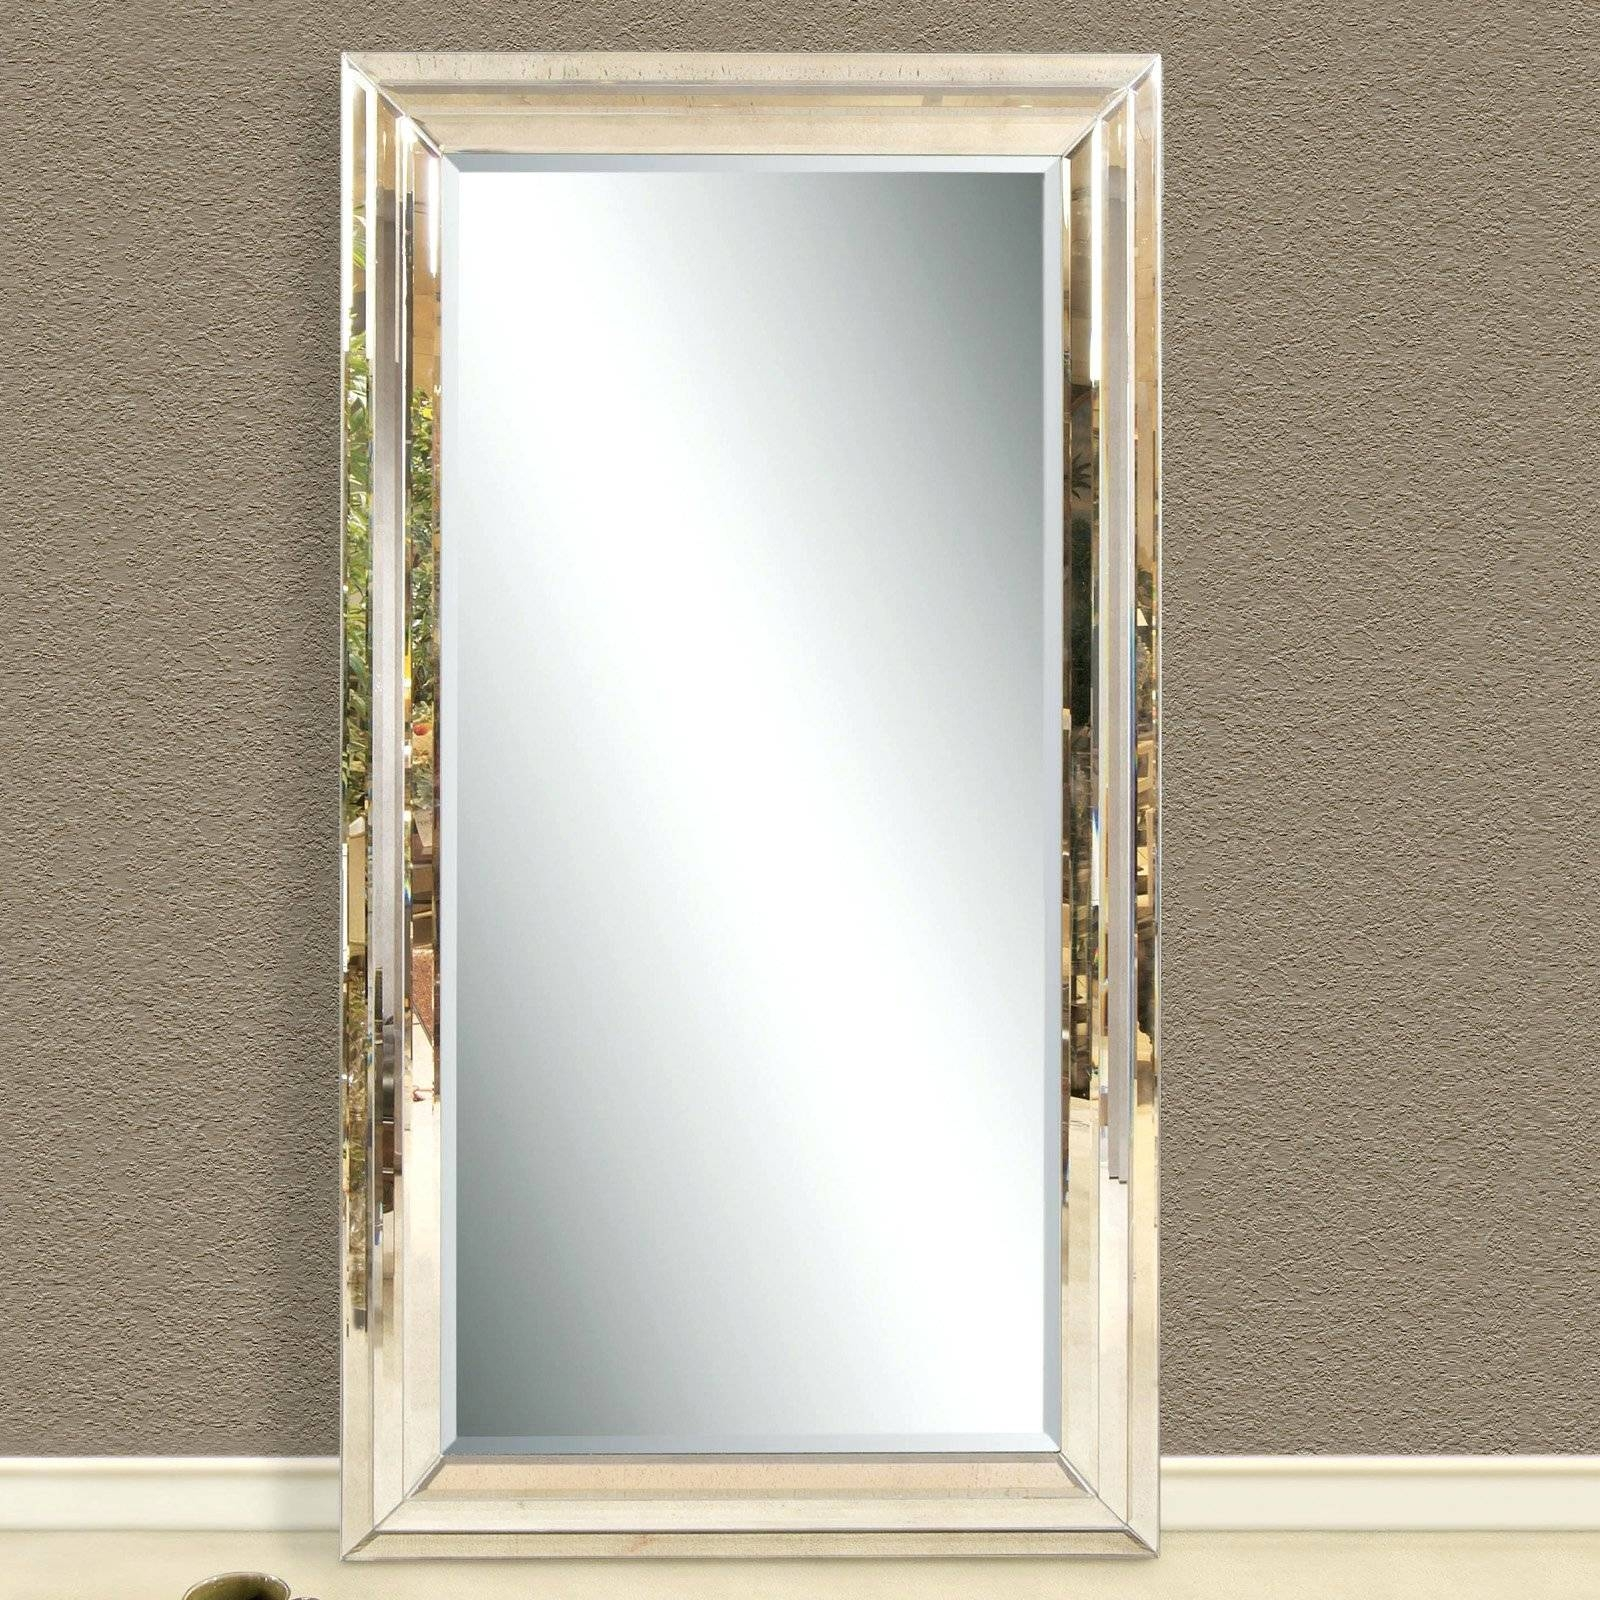 Mirrors : Cosgrove Gold Extra Large Mirror 213 X 152 Large inside Extra Large Venetian Mirrors (Image 10 of 15)